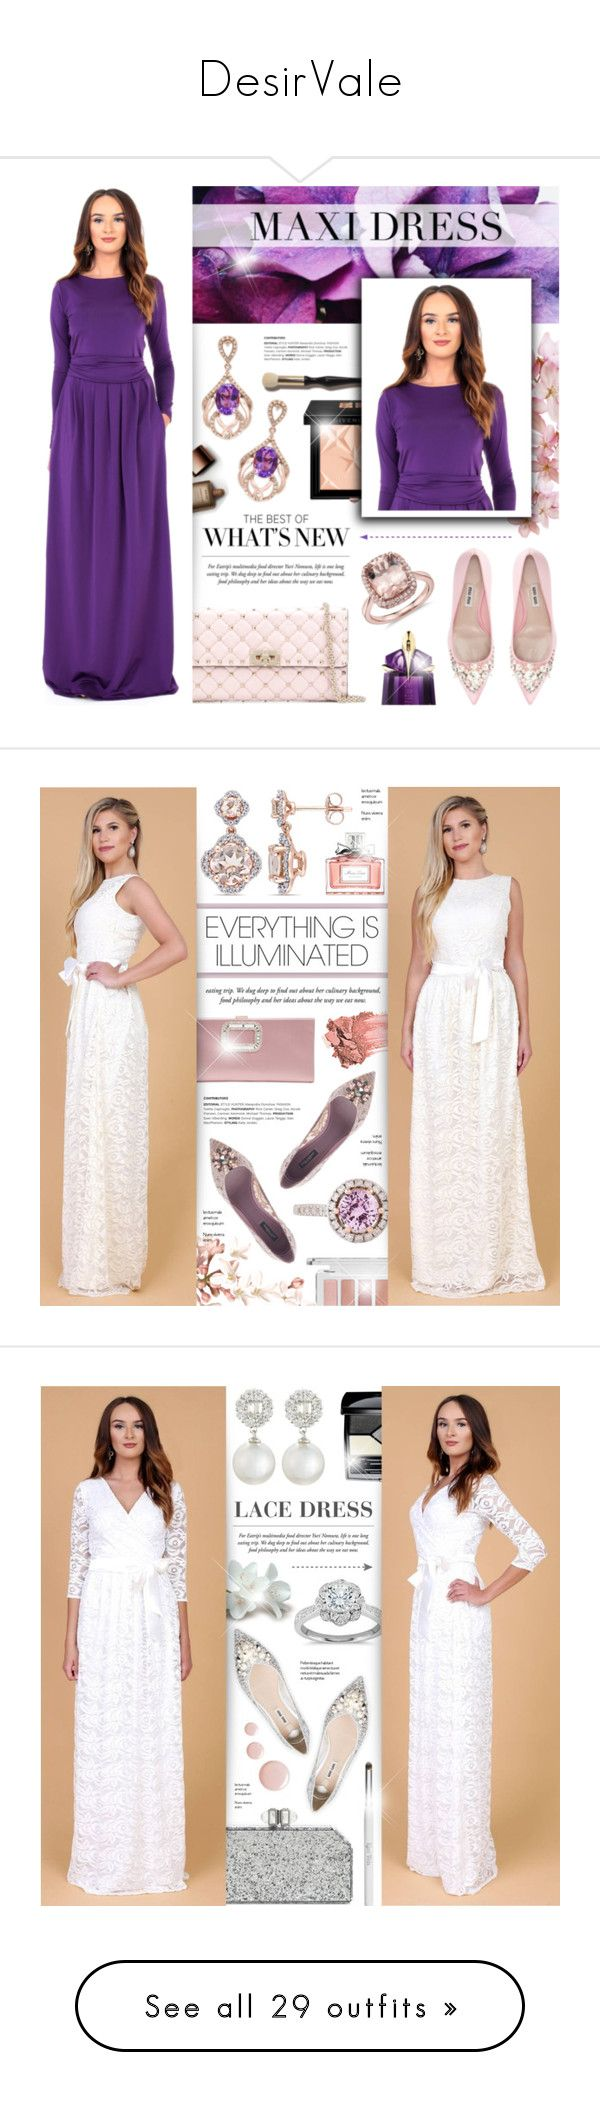 """""""DesirVale"""" by anyasdesigns ❤ liked on Polyvore featuring DesirVale, Effy Jewelry, Nude by Nature, Givenchy, Valentino, Miu Miu, Thierry Mugler, plus size dresses, Amour and Dolce&Gabbana"""